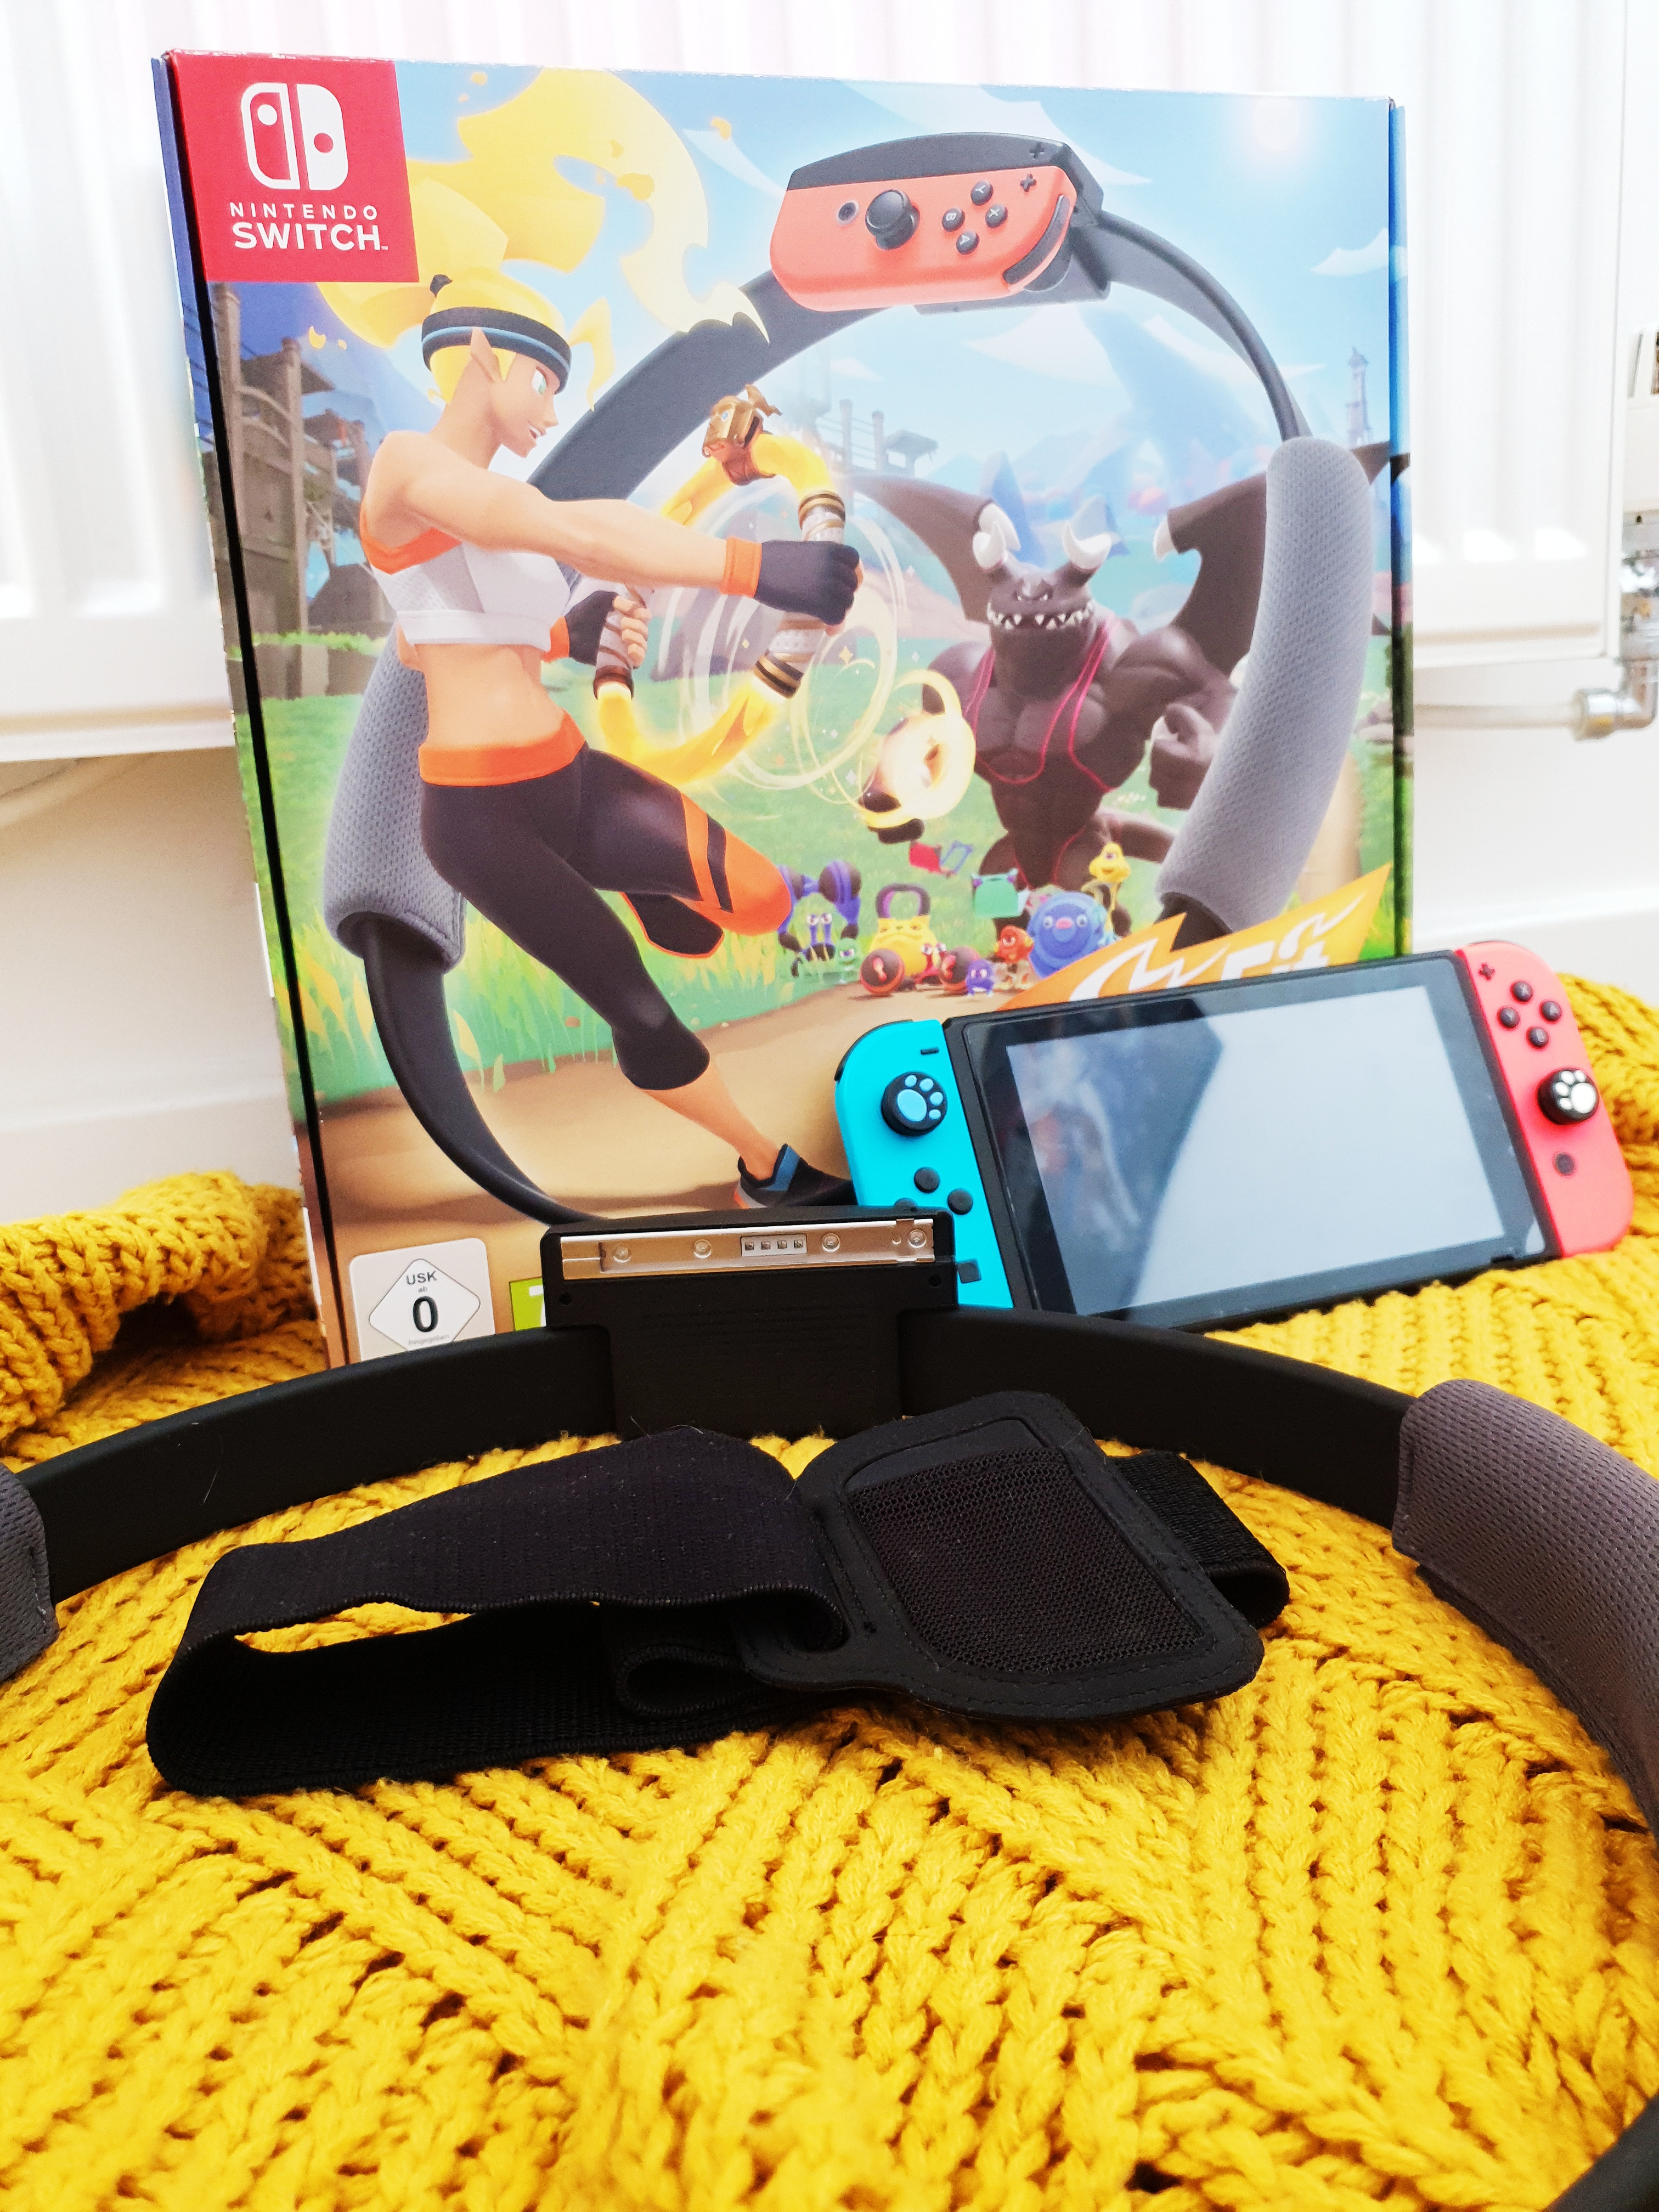 Nintendo Switch Ring Fit Adventure | First Impressions.